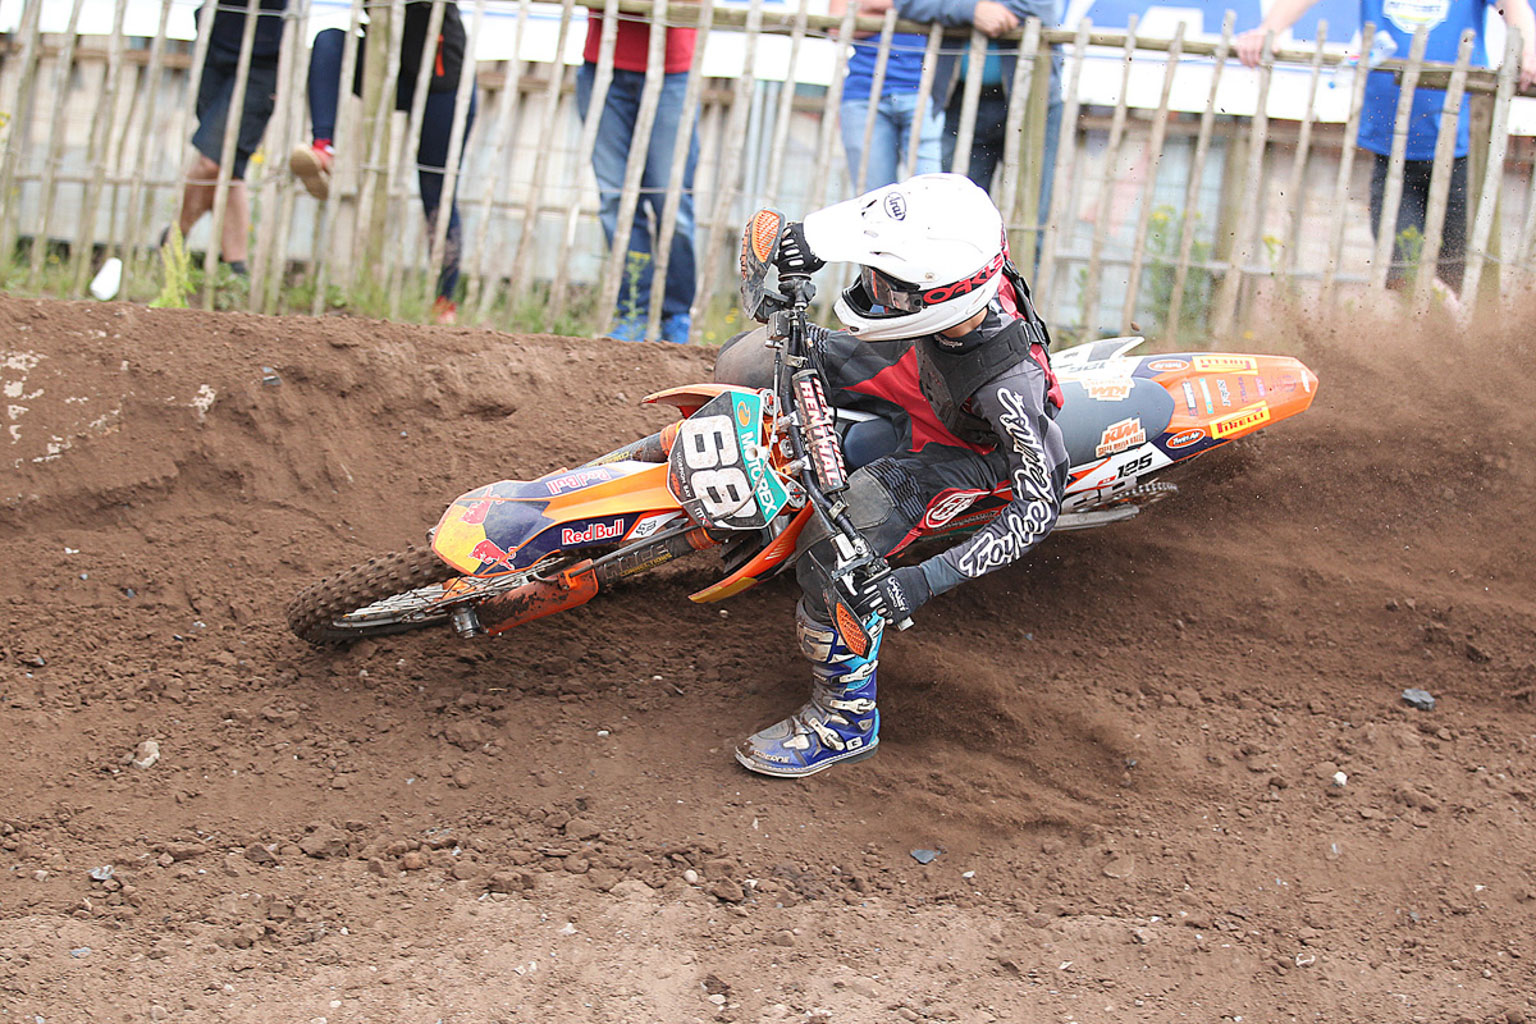 Nathan Bache in 2T action